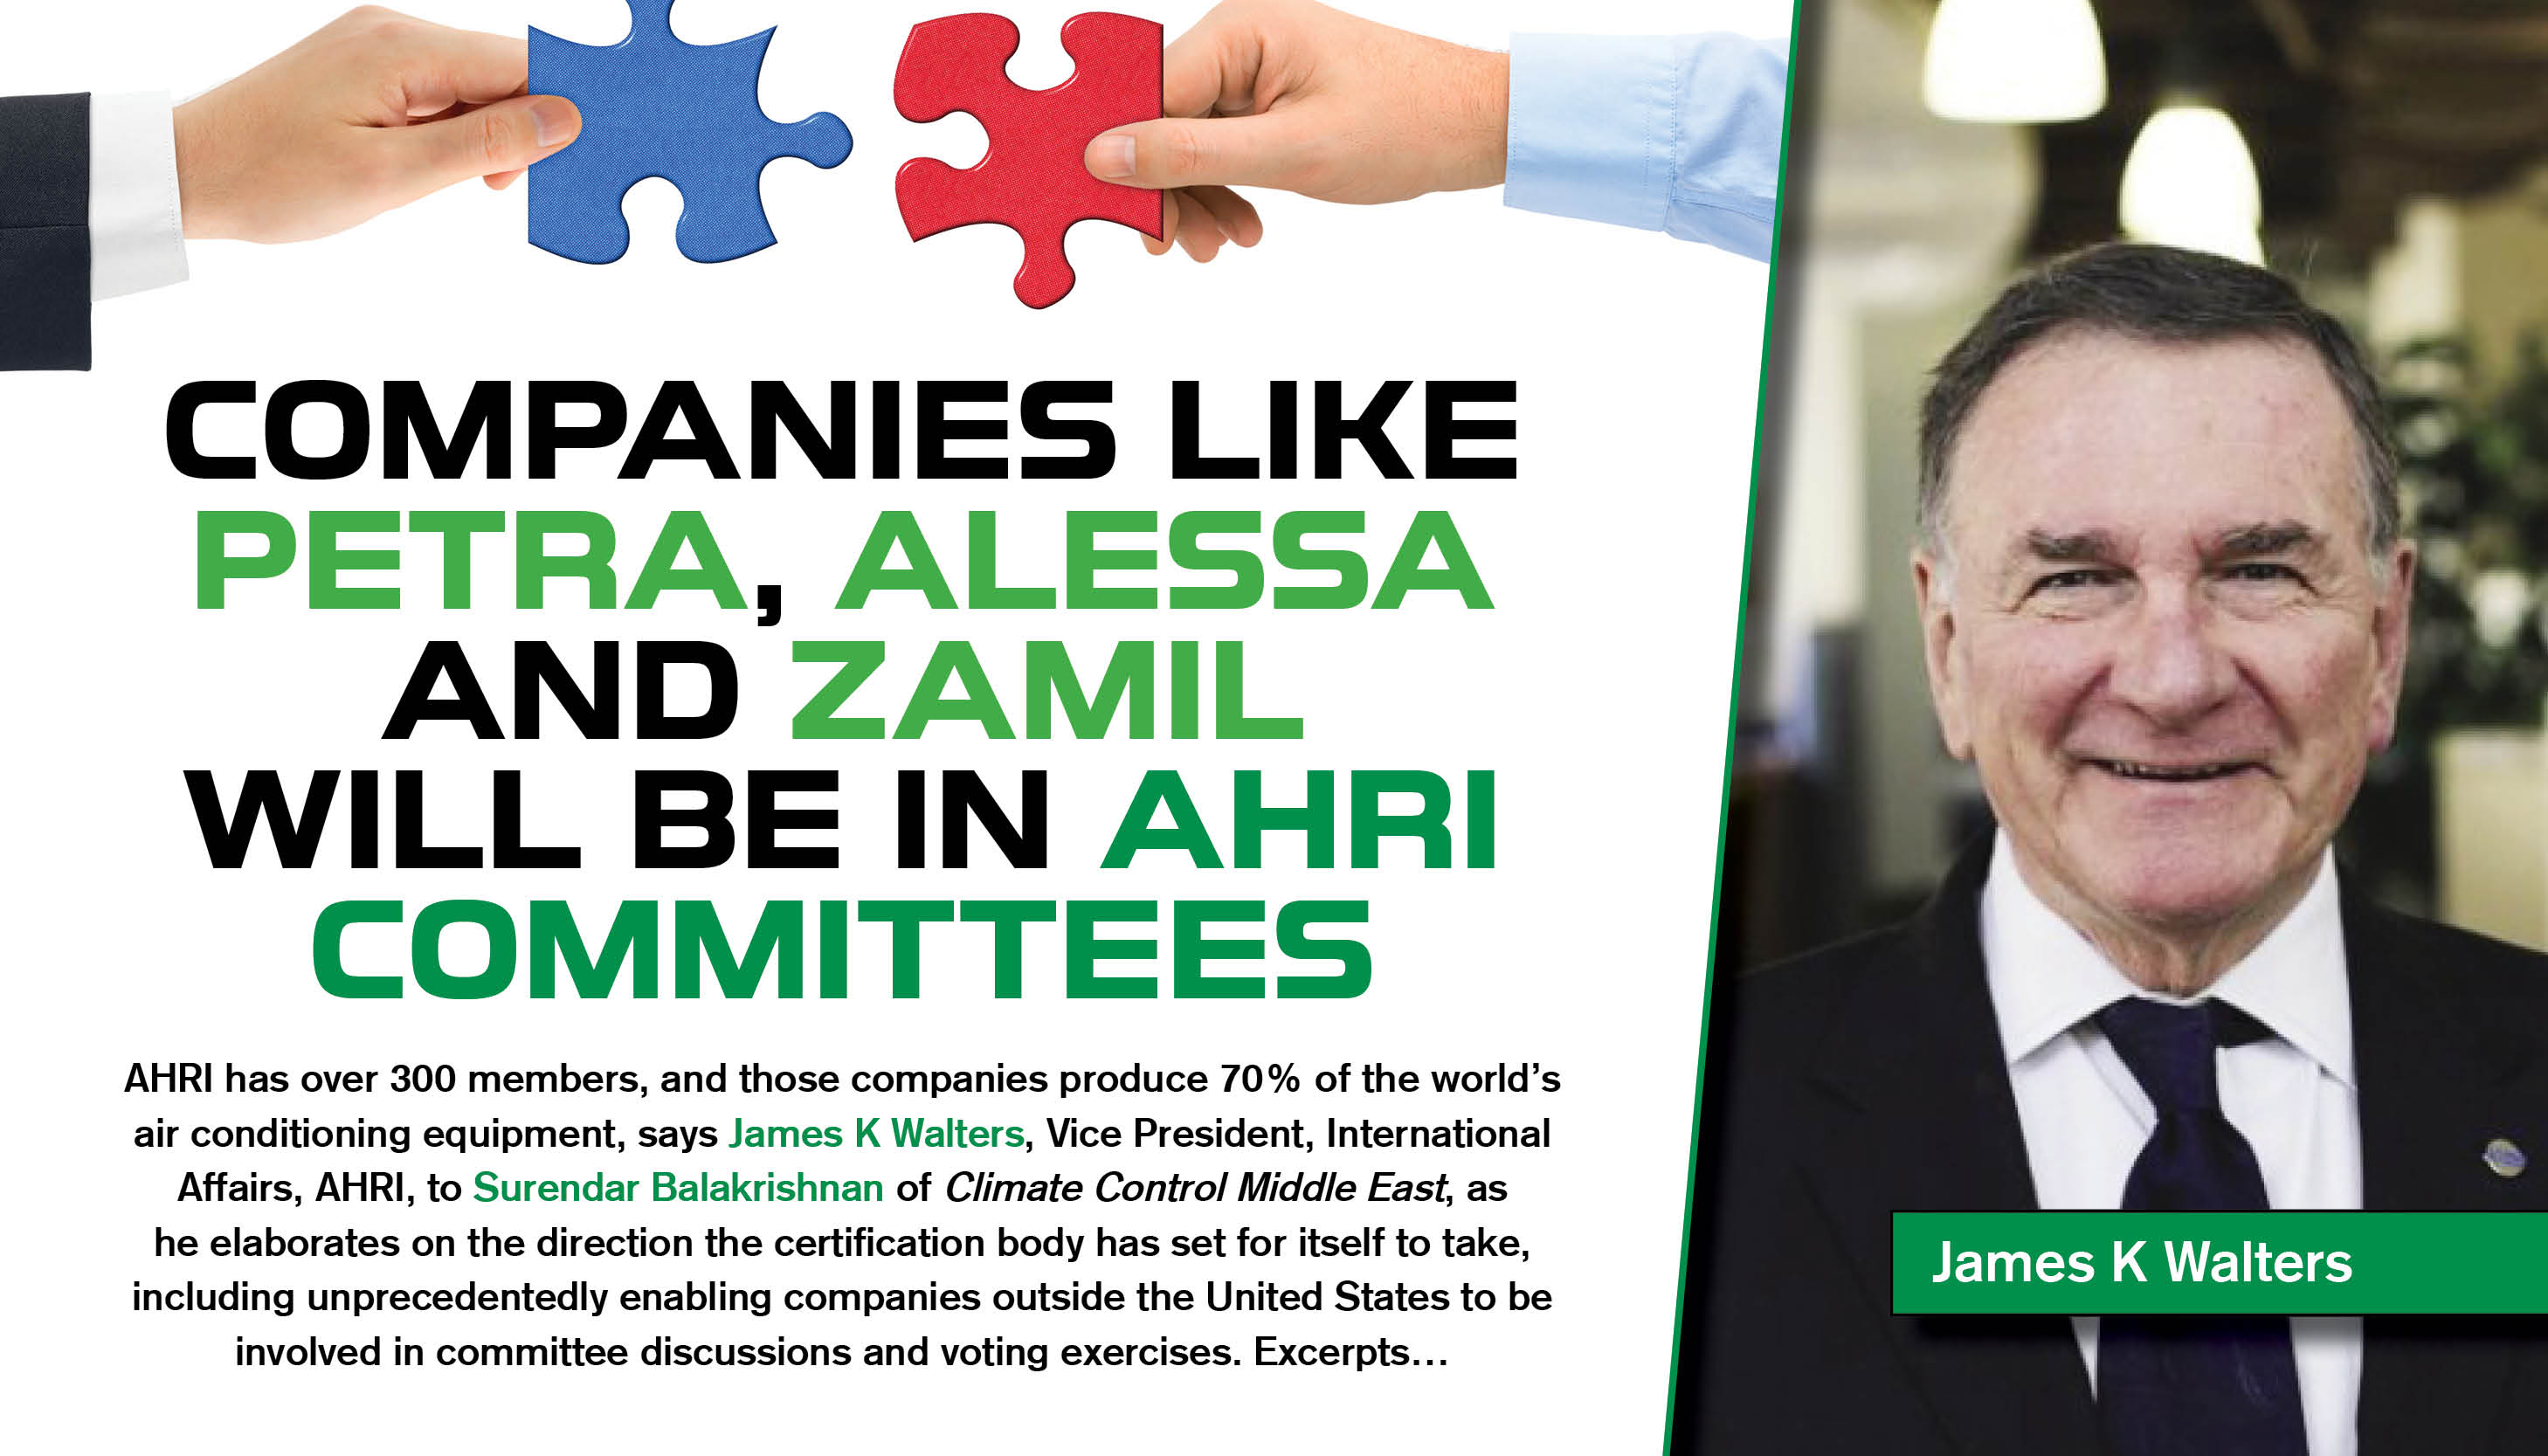 Companies like Petra, Alessa and Zamil will be in AHRI committees